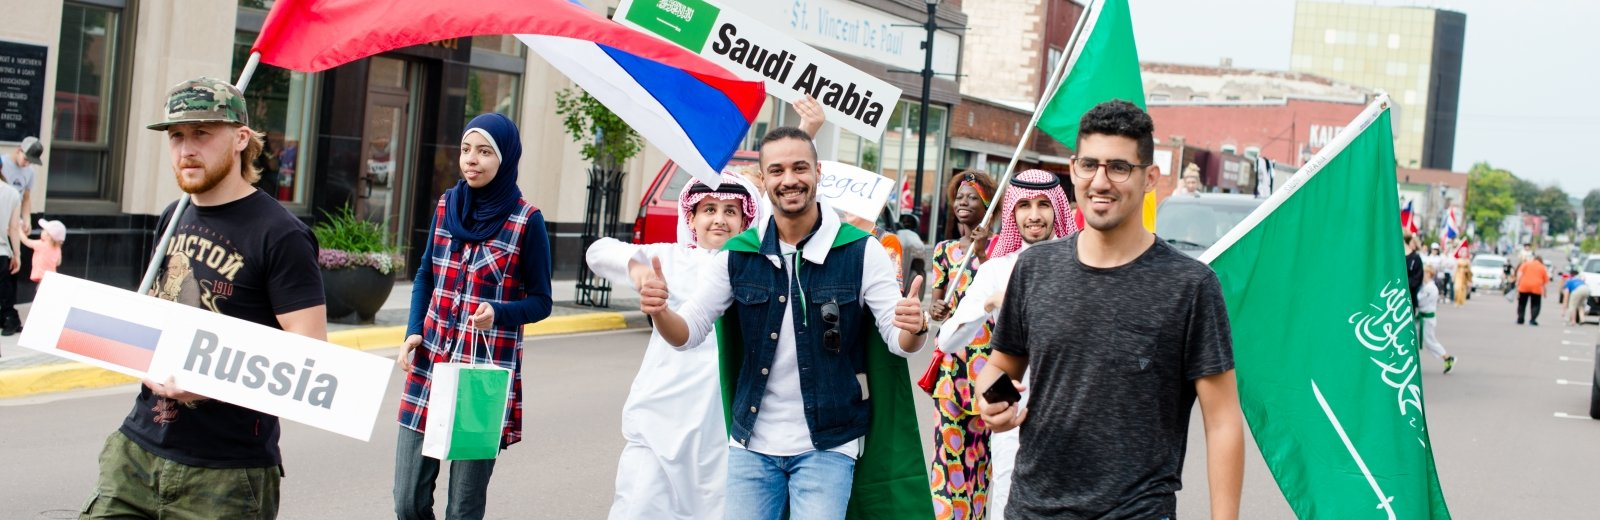 men carrying Saudi Arabia, Senegal, Russia flags and a woman carrying a bag smiling in a parade on a downtown street in a small town